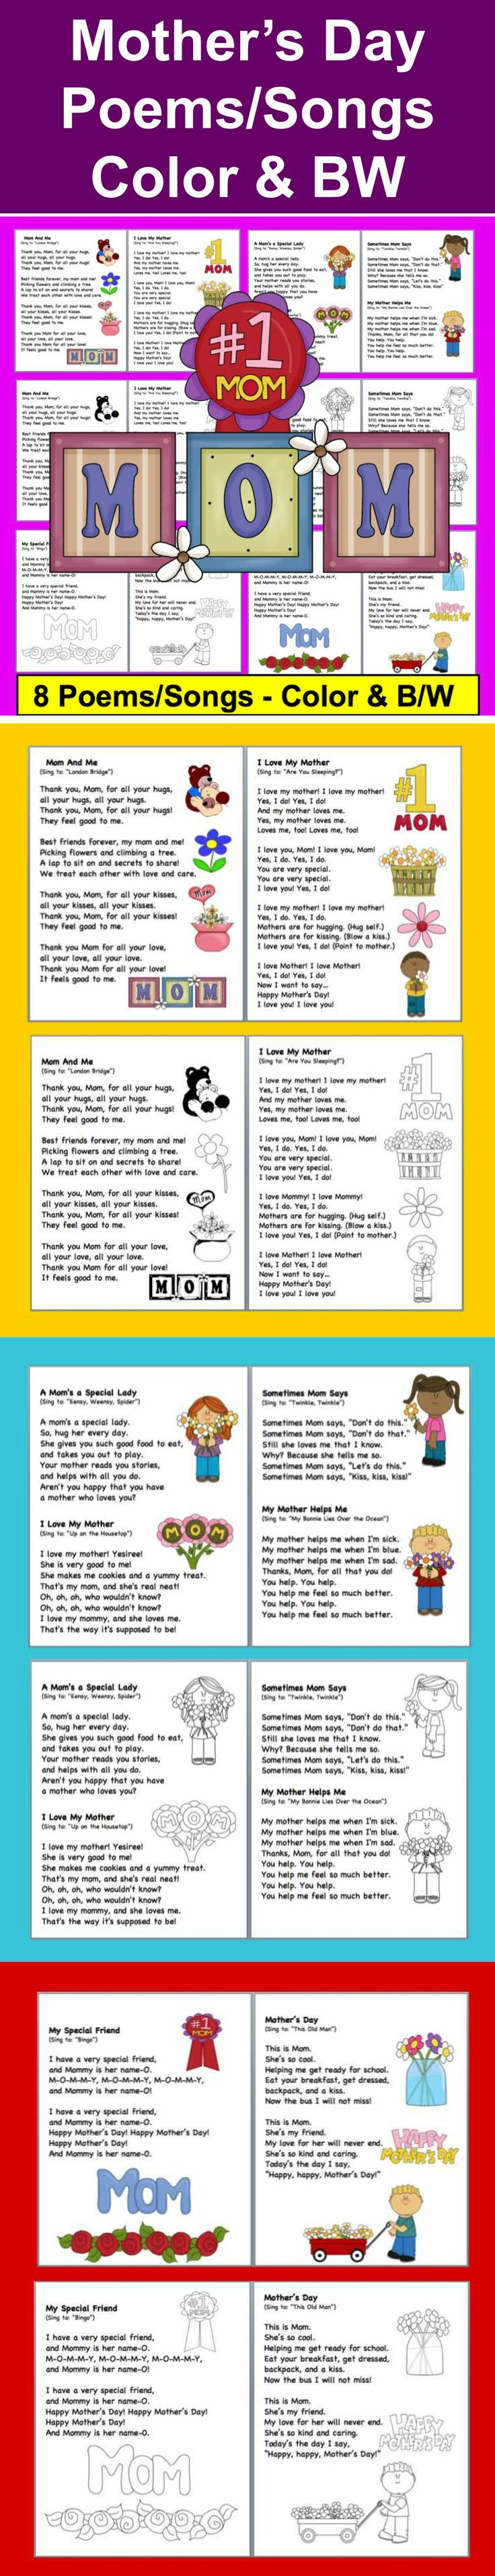 $ Mother's Day Poems/Songs – Shared Reading and Fluency - 14 Page Download – 8 songs/poems –  2 versions: color and black and white for students to color.